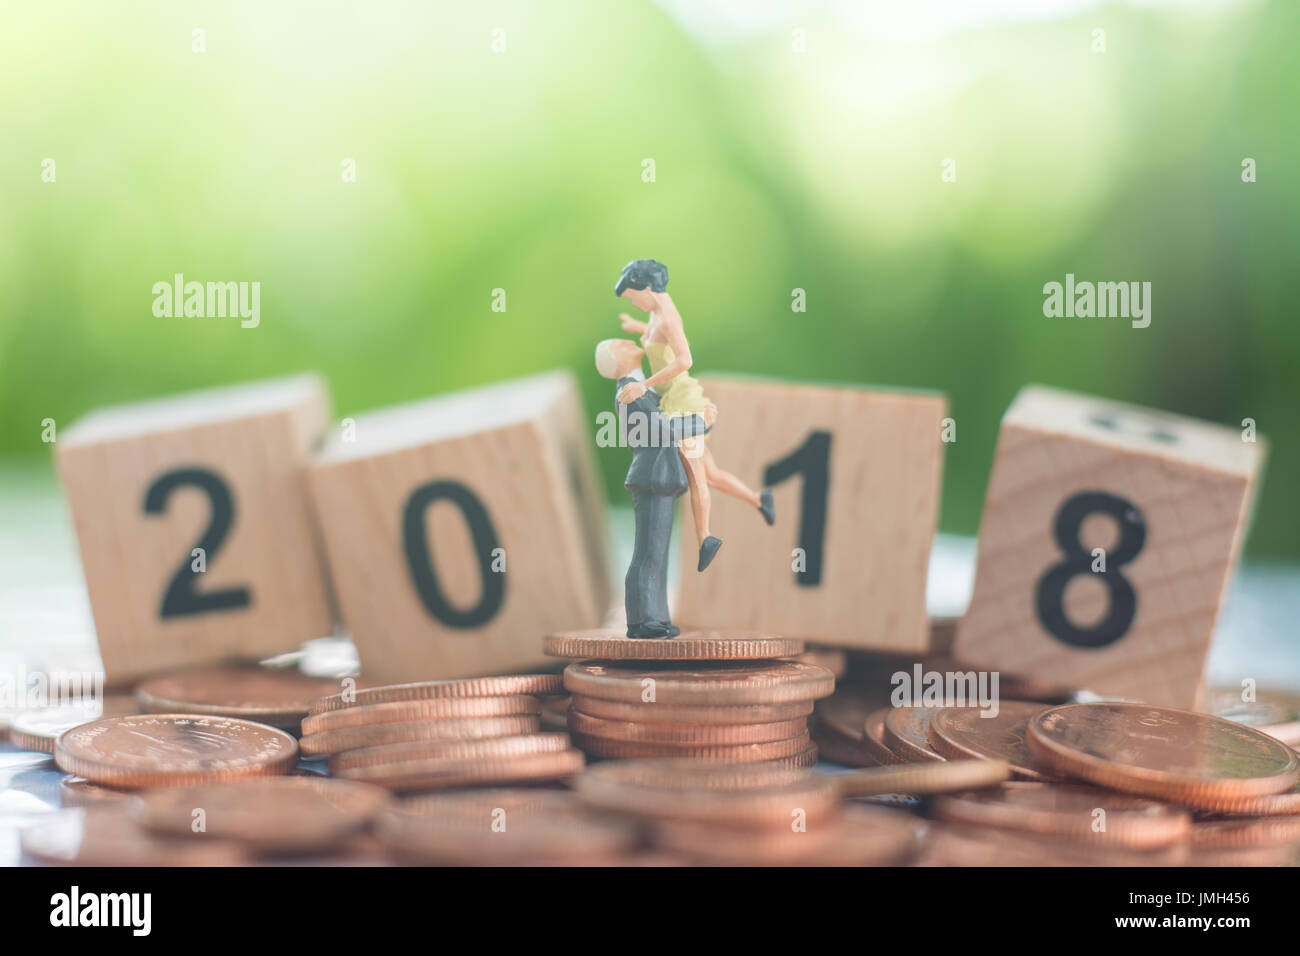 The man pick the woman up with love and happiness on the pile of coins and wooden number 2018 background using as growing together, teamwork. - Stock Image